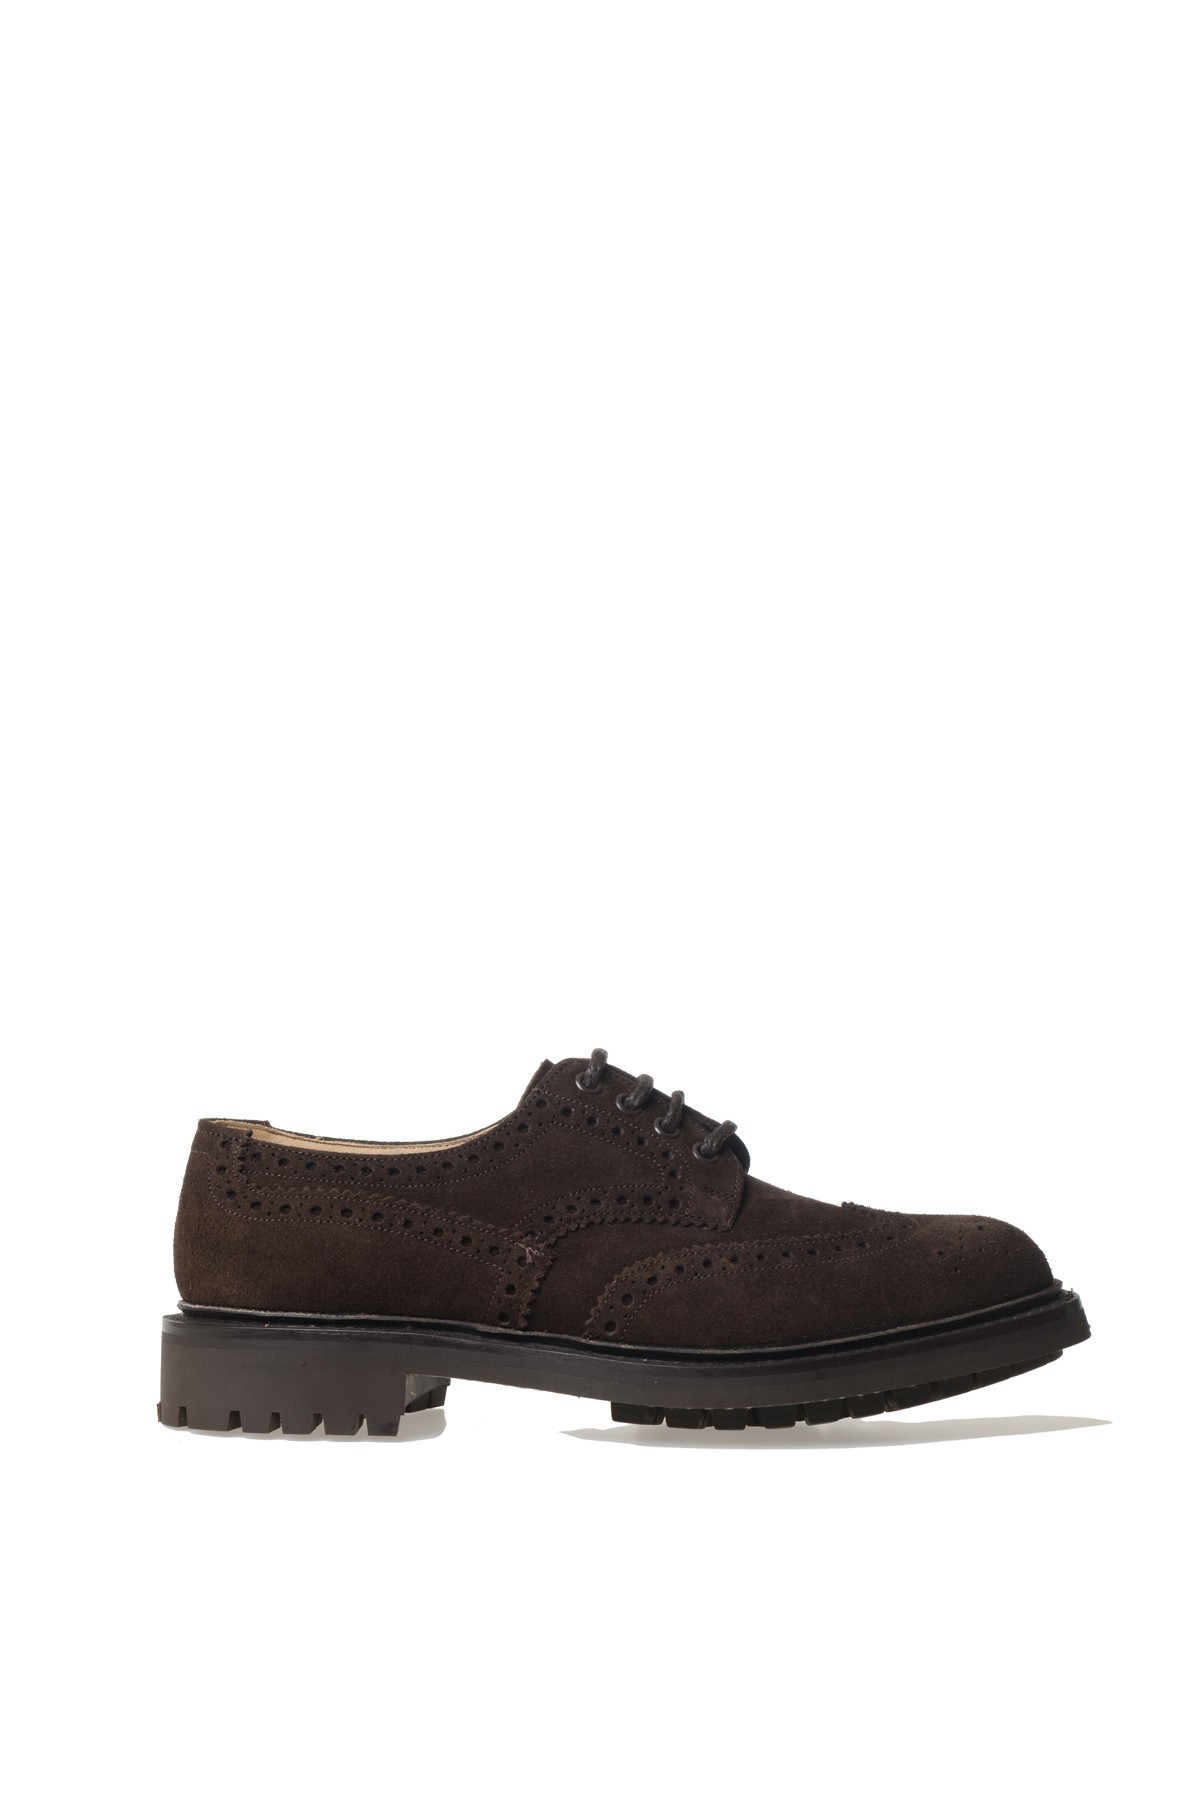 church s churchs suede lace up shoes in brown for lyst